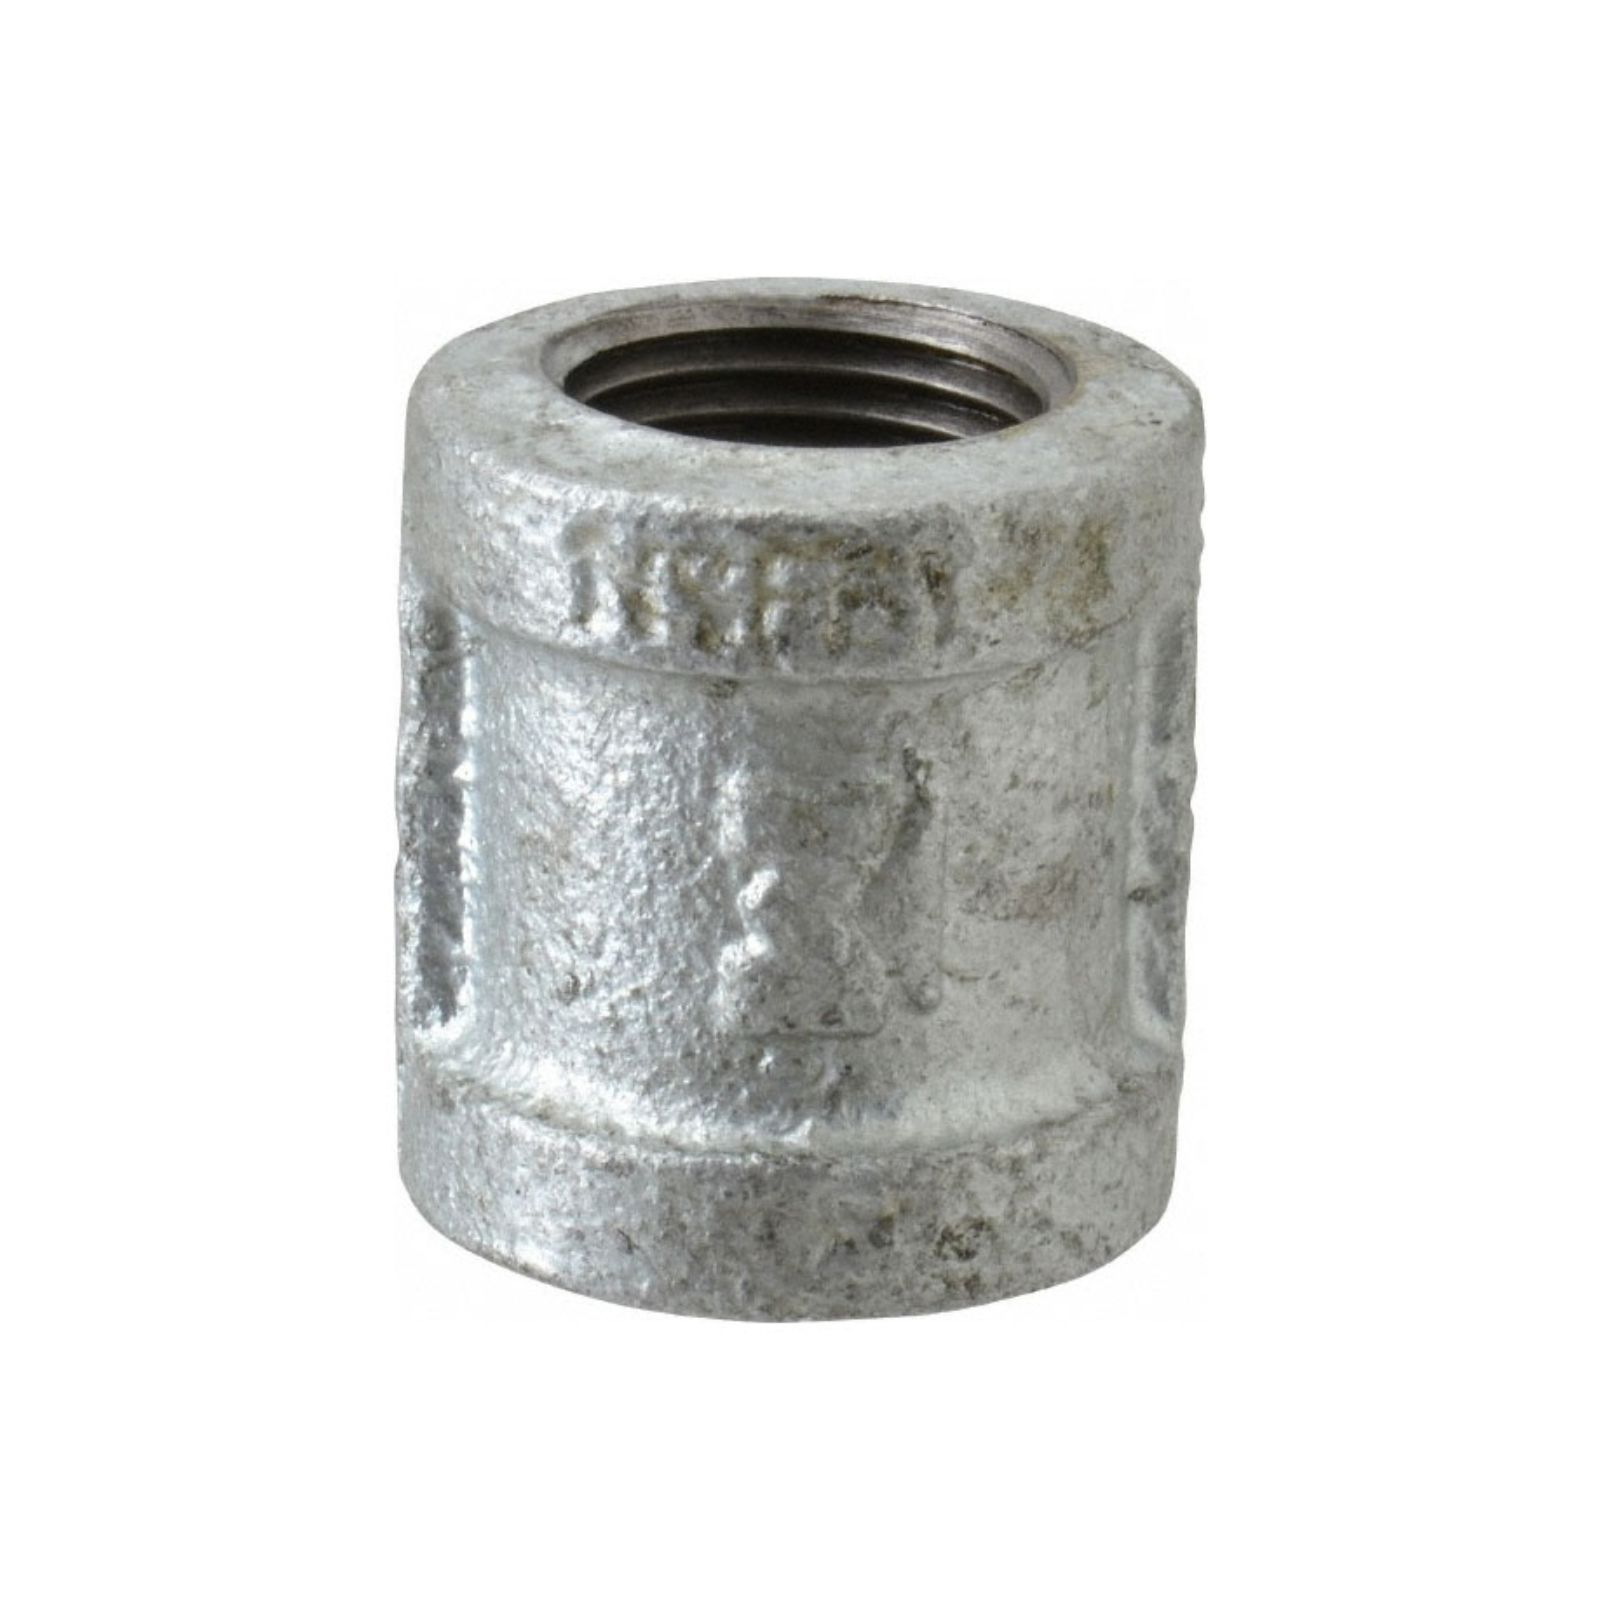 "Southland 511-203 - Galvanized Coupling, 1/2""I.D."